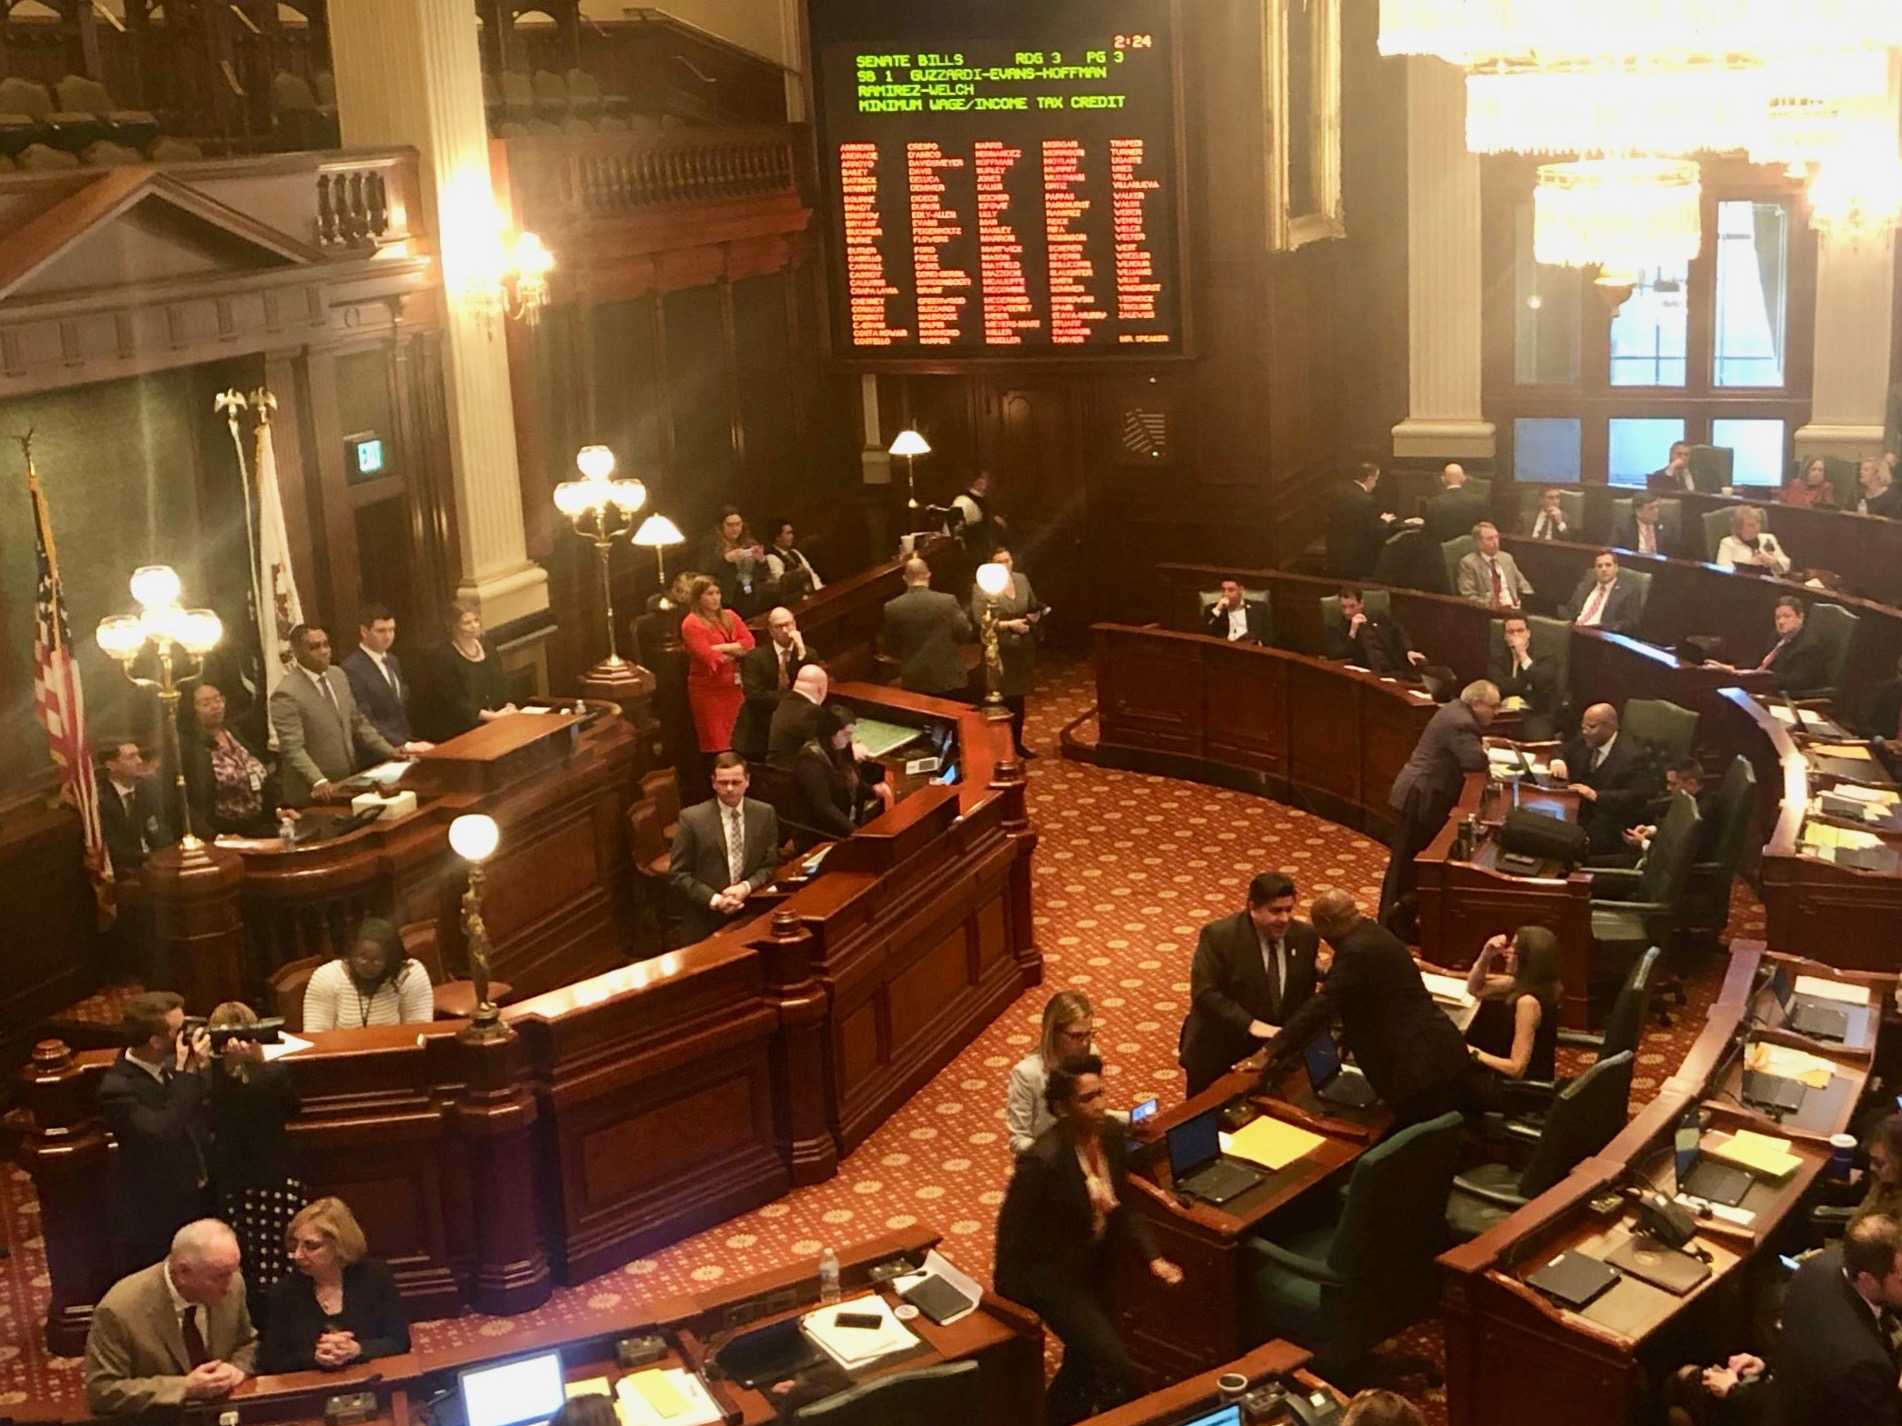 Gov. Pritzker lobbies on the House floor before the vote on the minimum wage. (Twitter/Andrea Kluger)